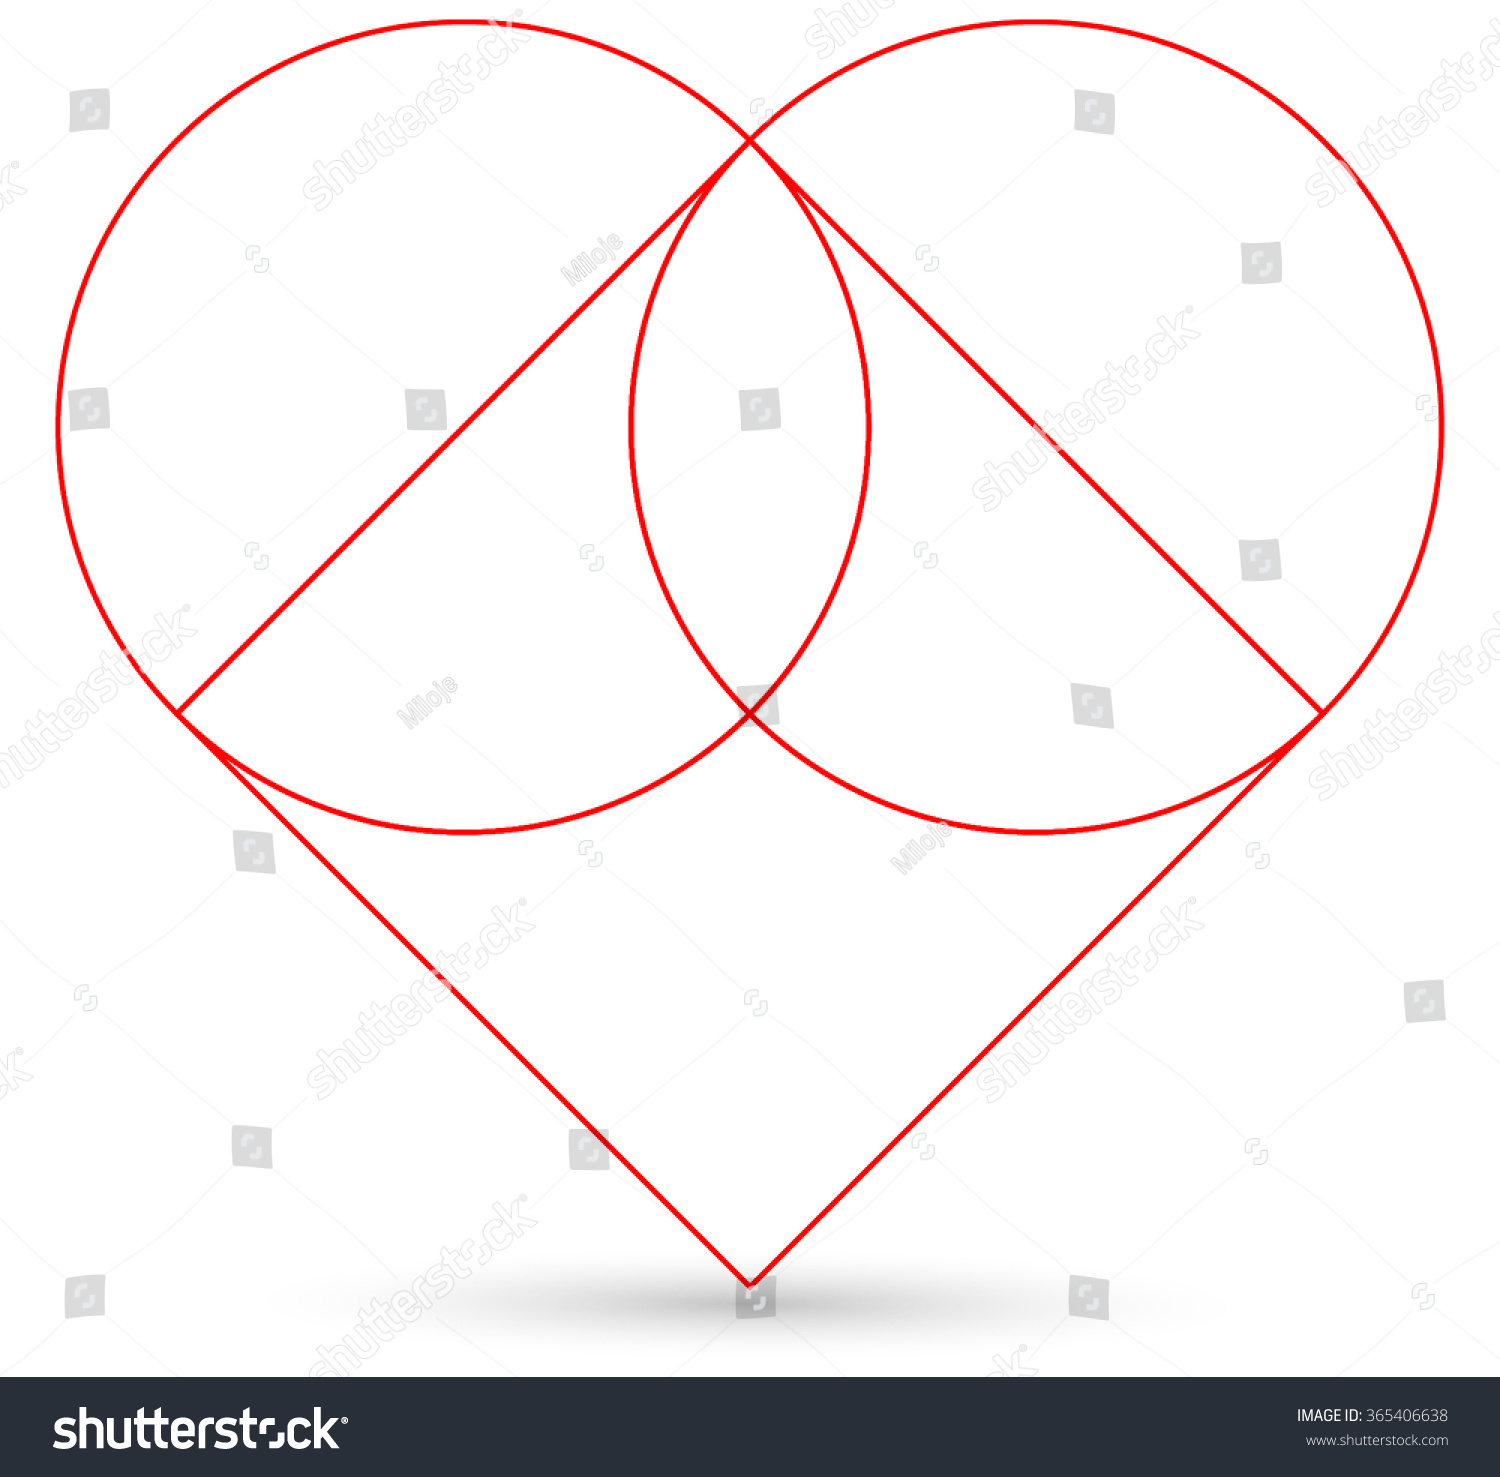 Logo Heart Red Logo Heart Logo Love heart Logo Heart Shape Distressed Heart Heart Logo Sign Valentine's Day Logo Heart Heart Logo Icon Creative Logo Heart Vector Logo Heart